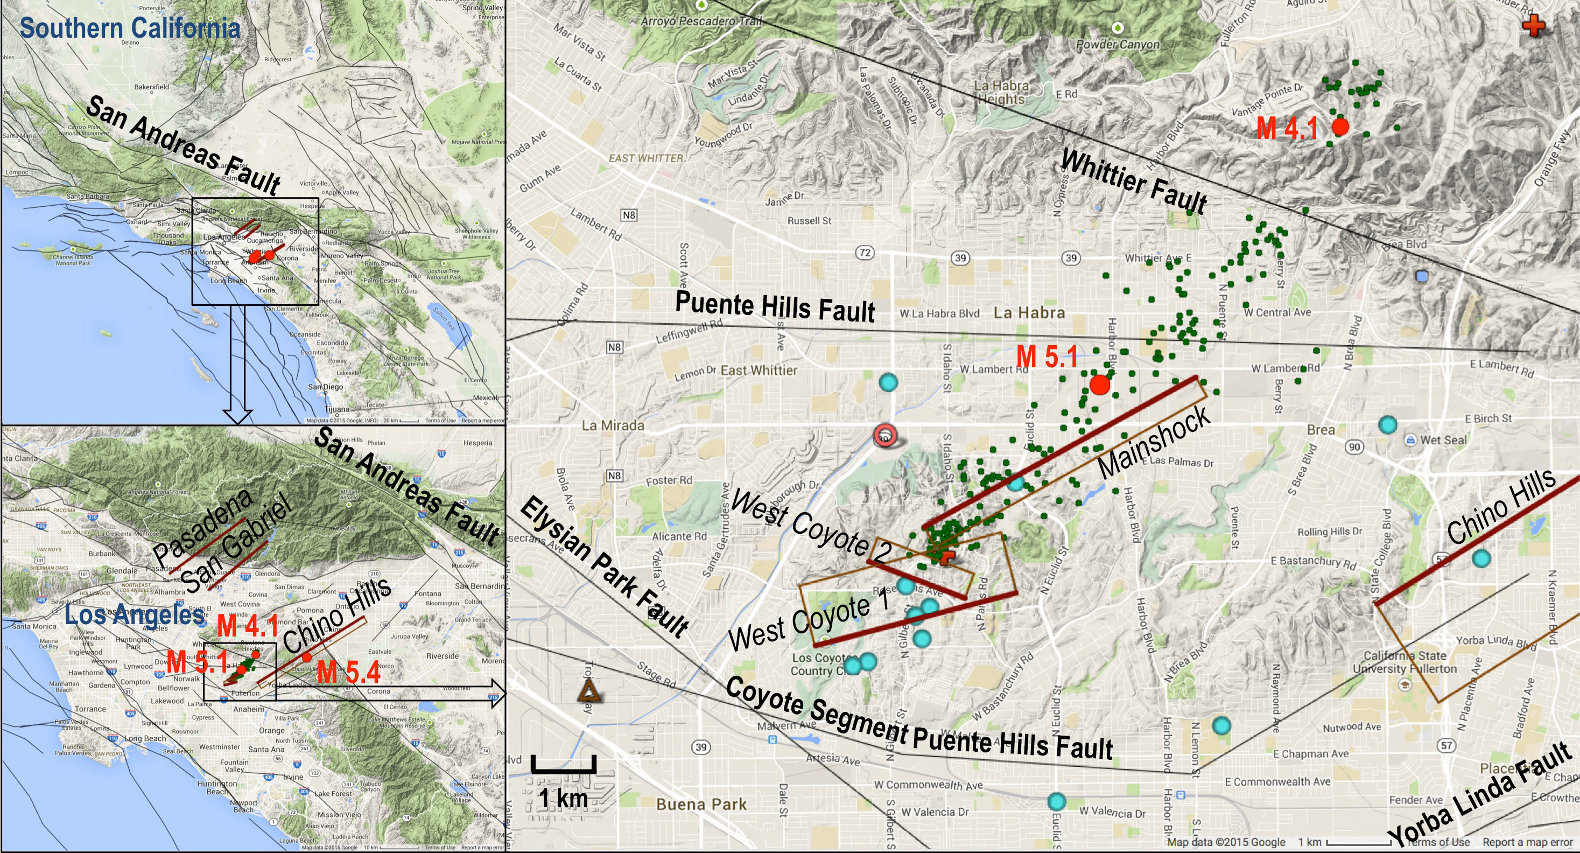 NASA experts say California's next big earthquake could happen in less than three years